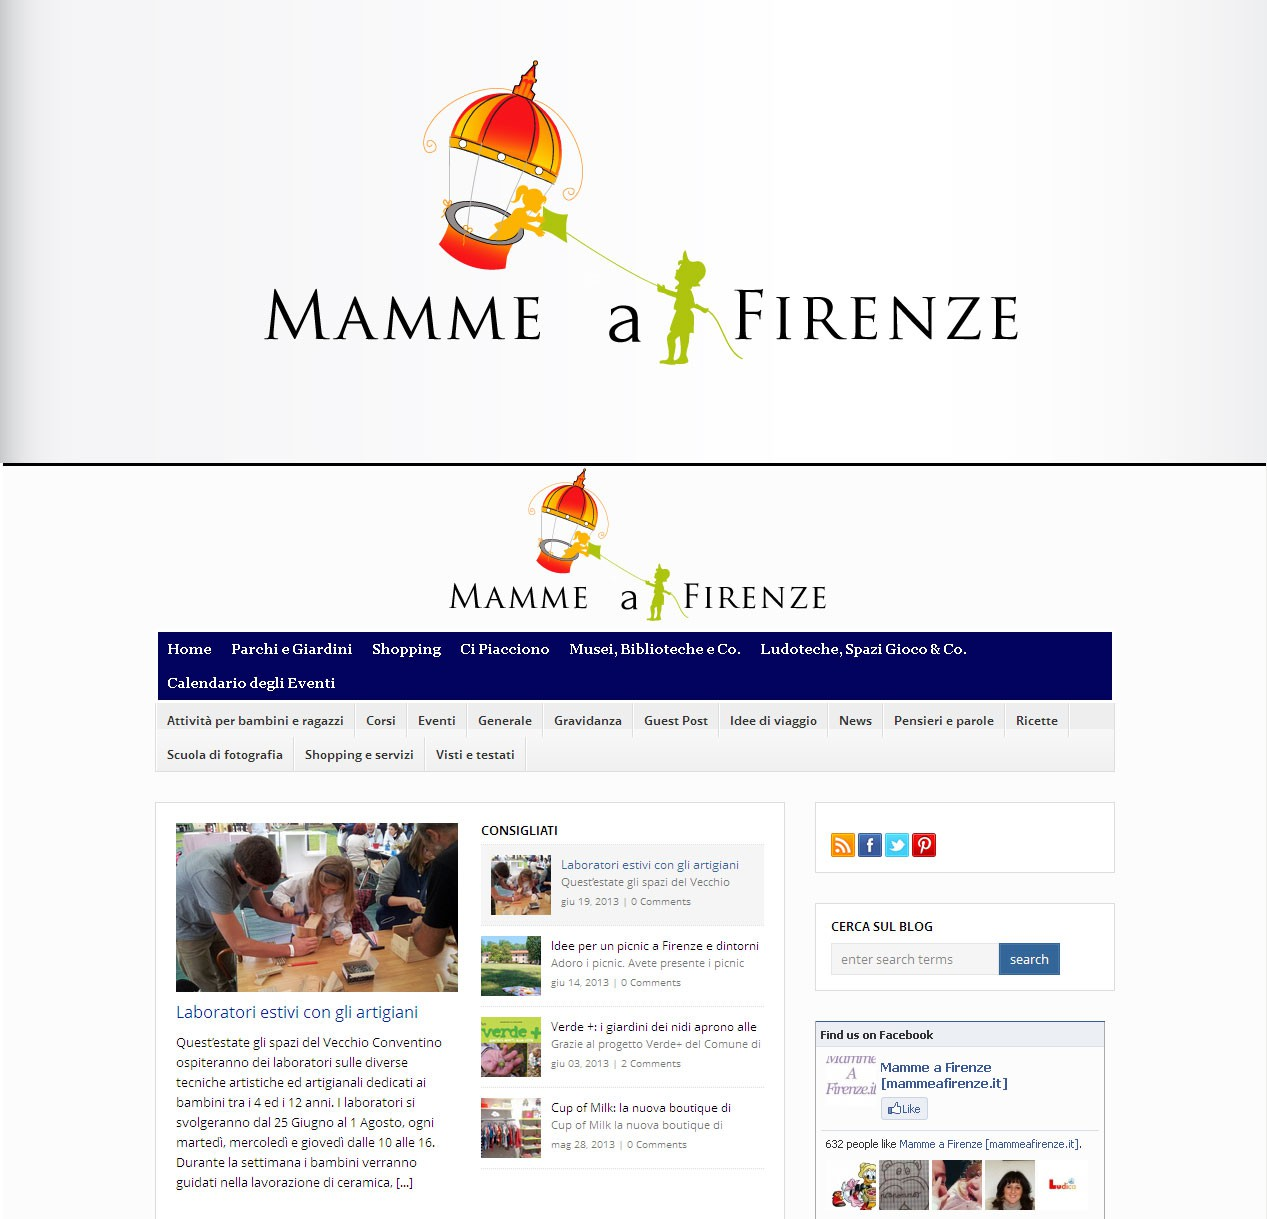 Create the new logo for MammeaFirenze.it